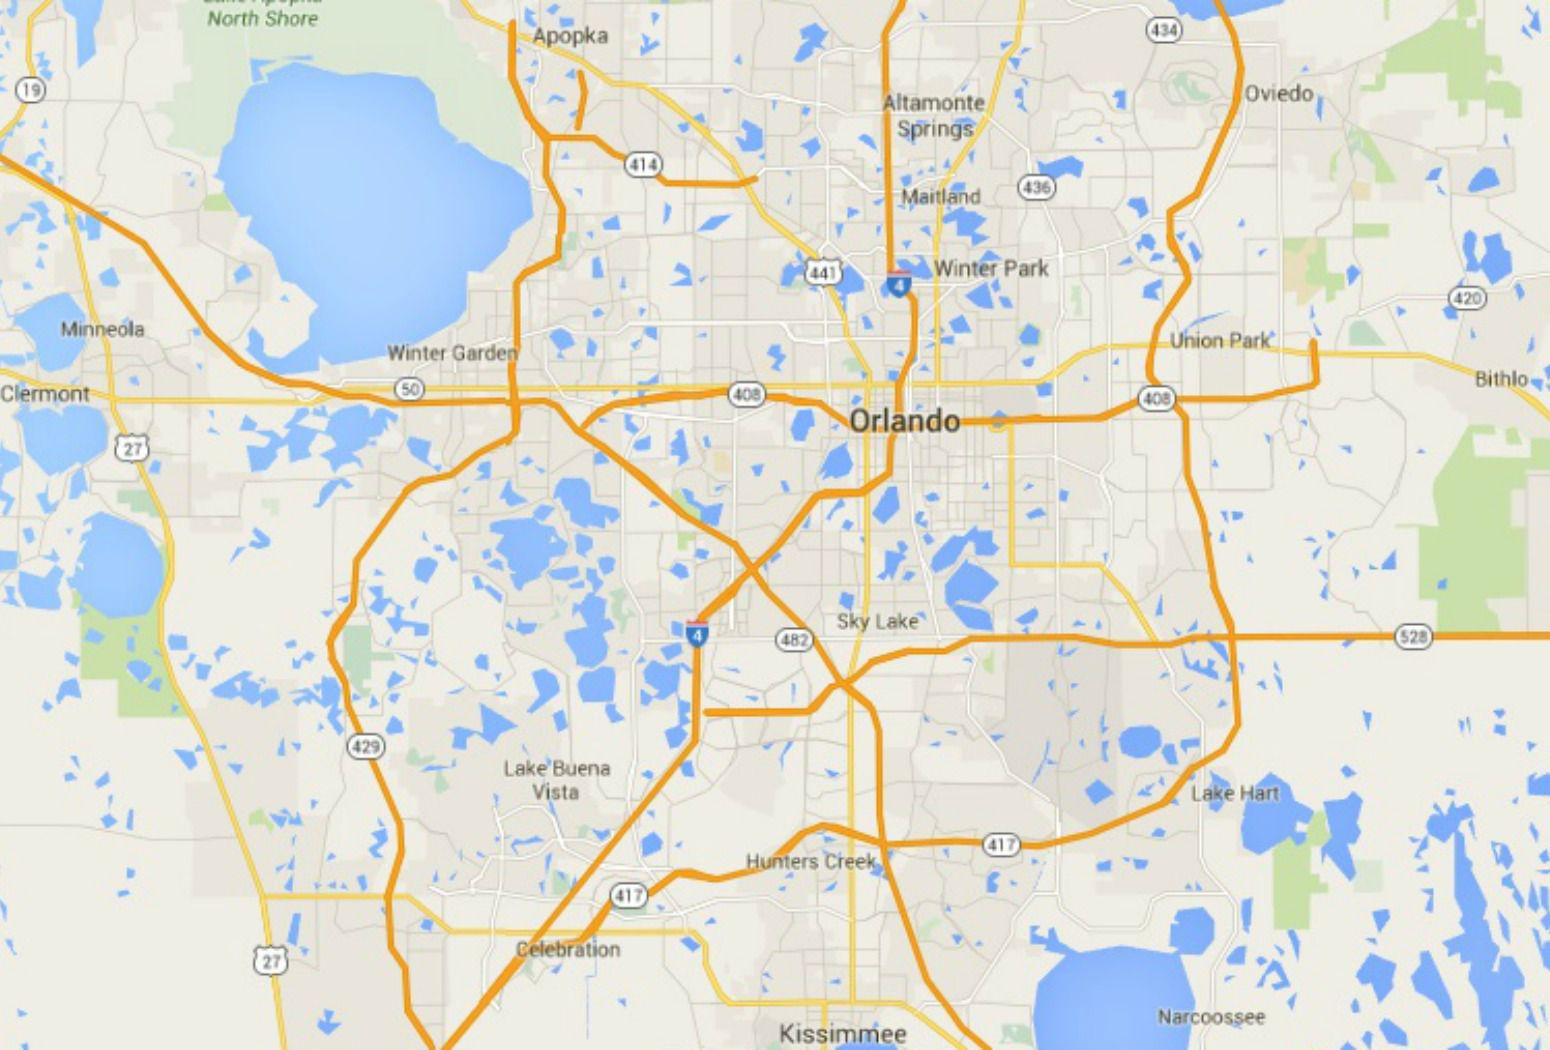 Maps Of Florida: Orlando, Tampa, Miami, Keys, And More - Map Of Central Florida